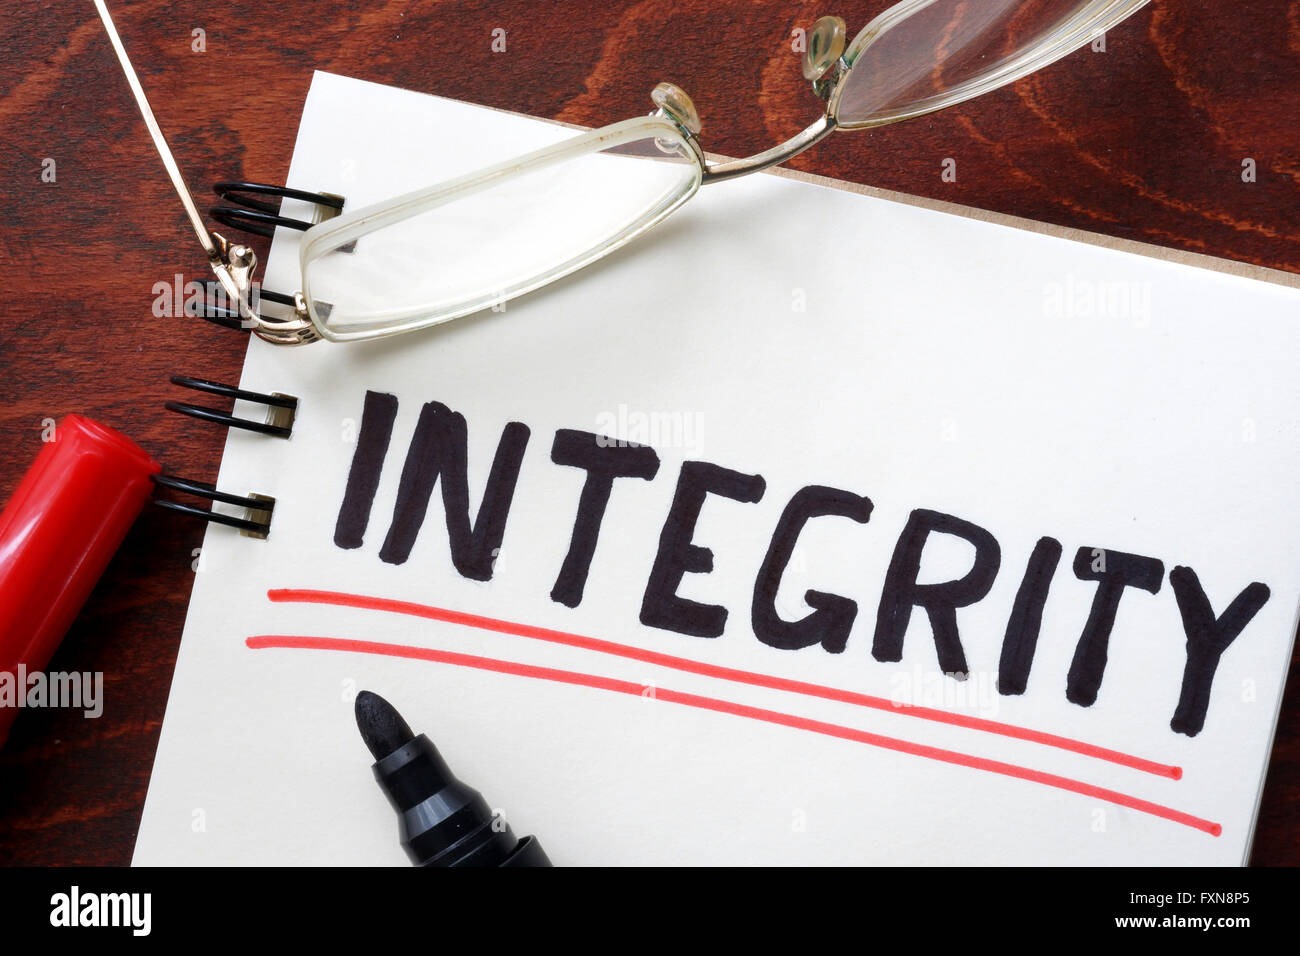 Integrity written in a notebook. Business concept. - Stock Image